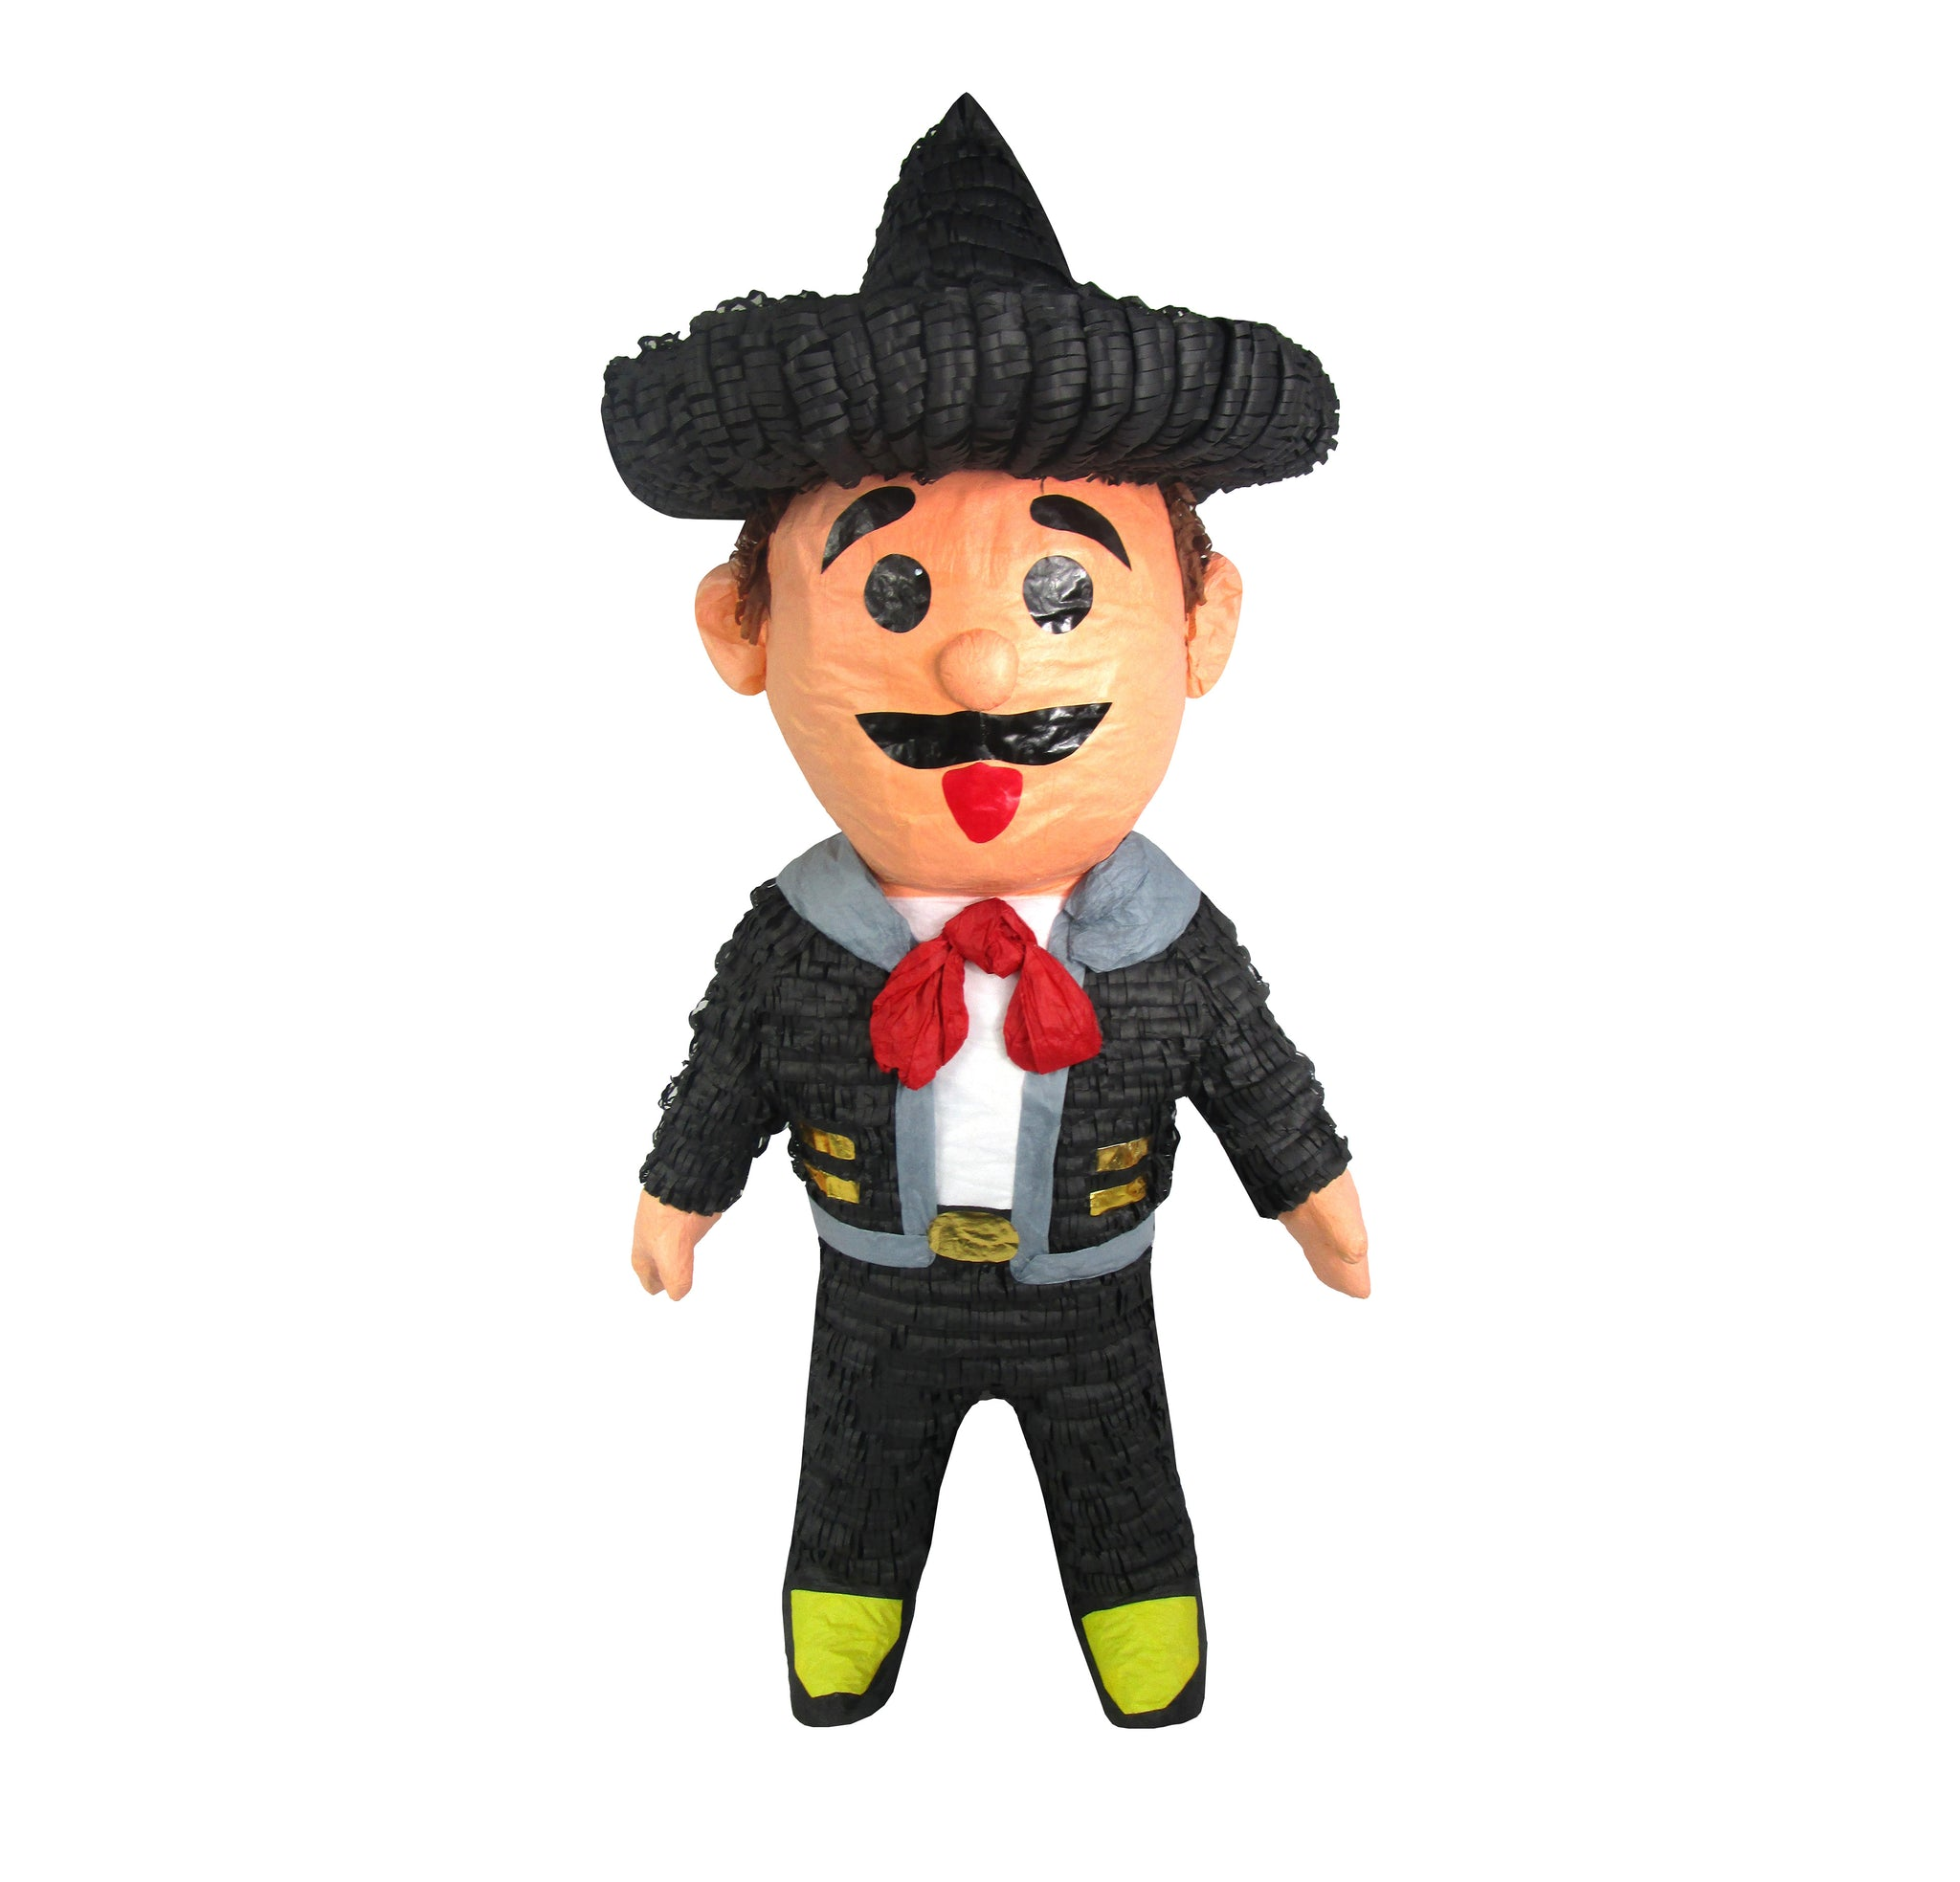 CUSTOM PERSON PINATA - MEXICAN MARIACHI FOR FIESTAS